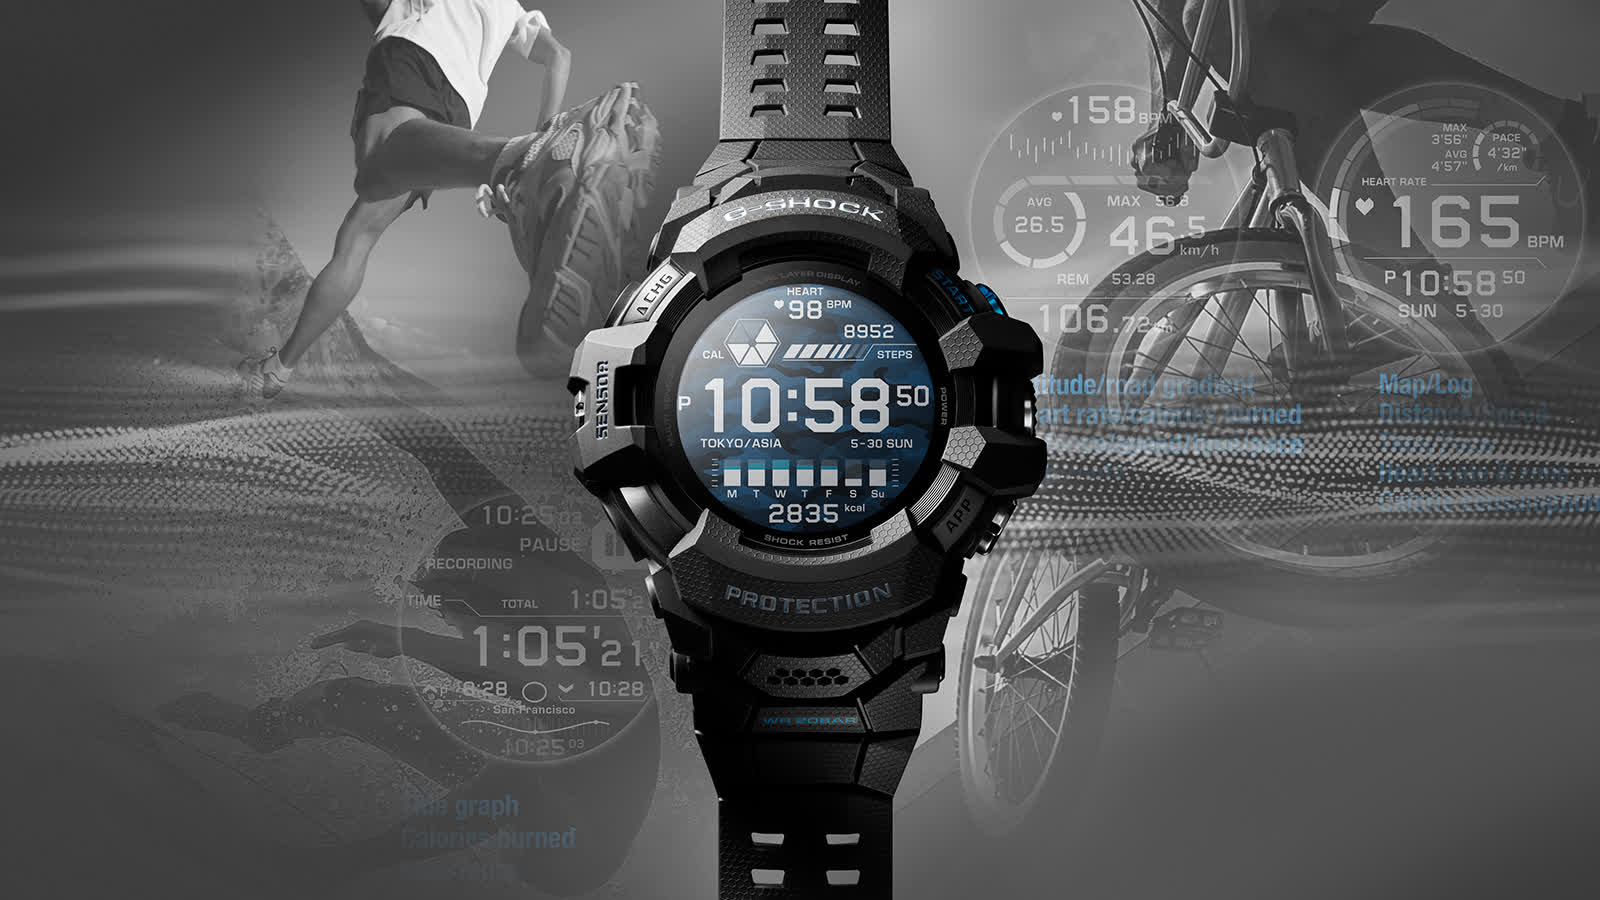 Casio adds Wear OS to latest G-Shock watch for the first time